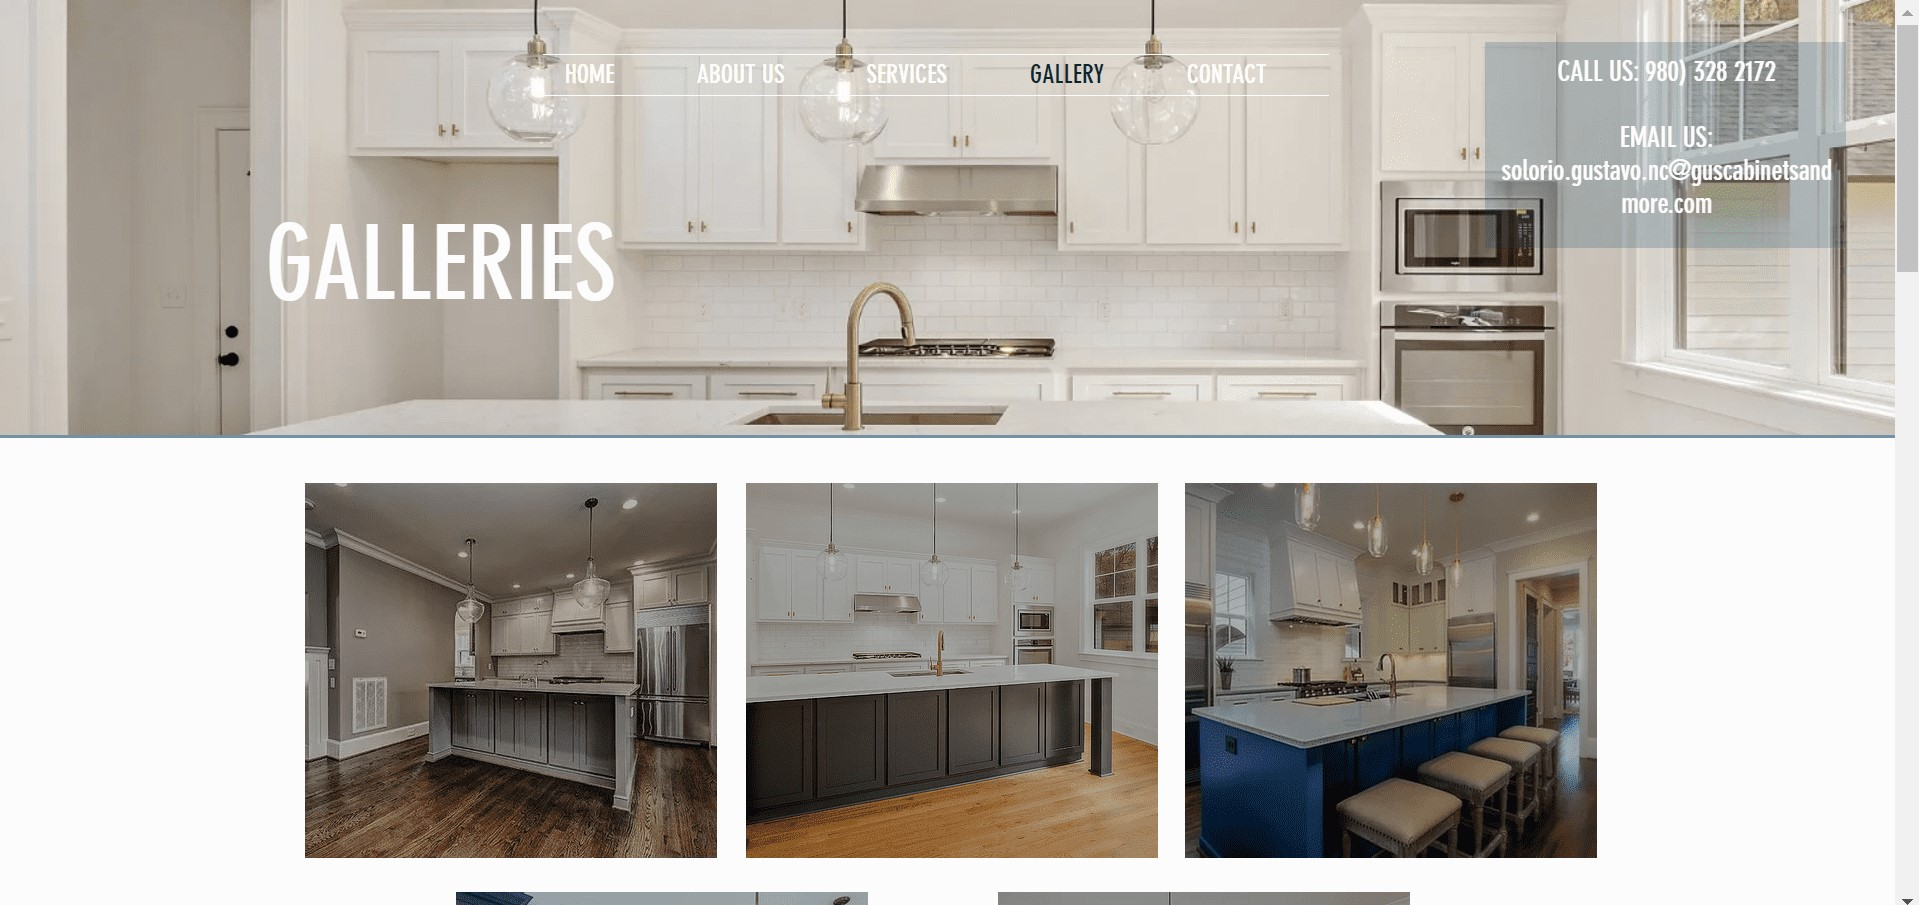 Gus Cabinets Website